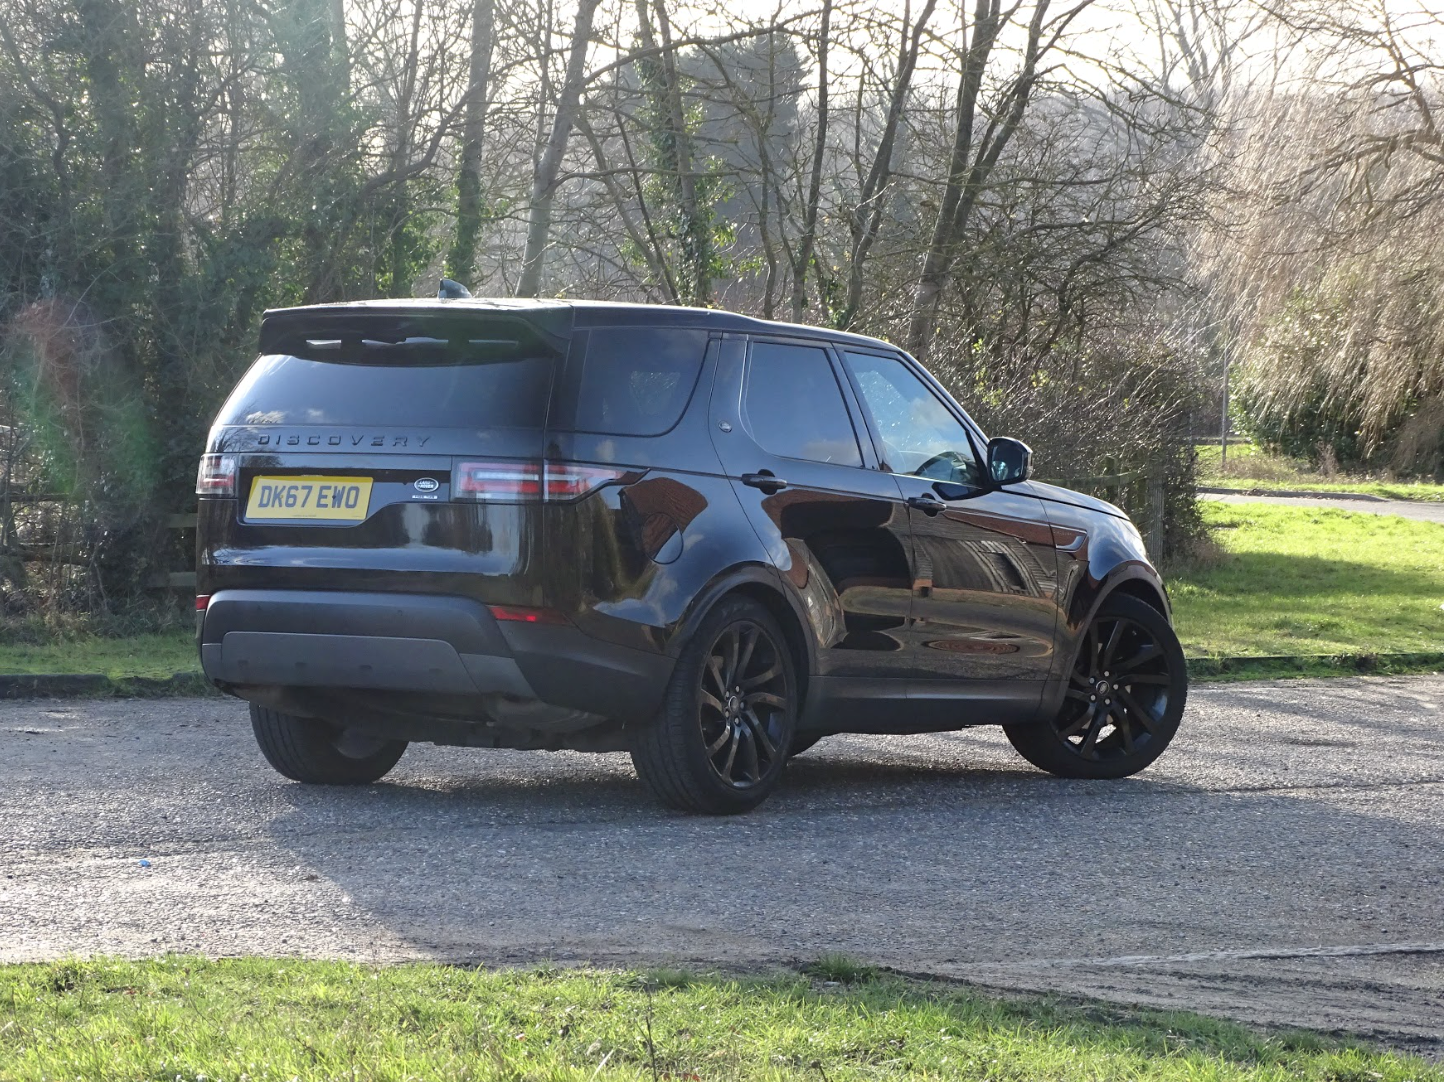 2017 Land Rover  DISCOVERY  3.0 SDV6 HSE 7 SEATER AUTO  41,948 For Sale (picture 2 of 13)